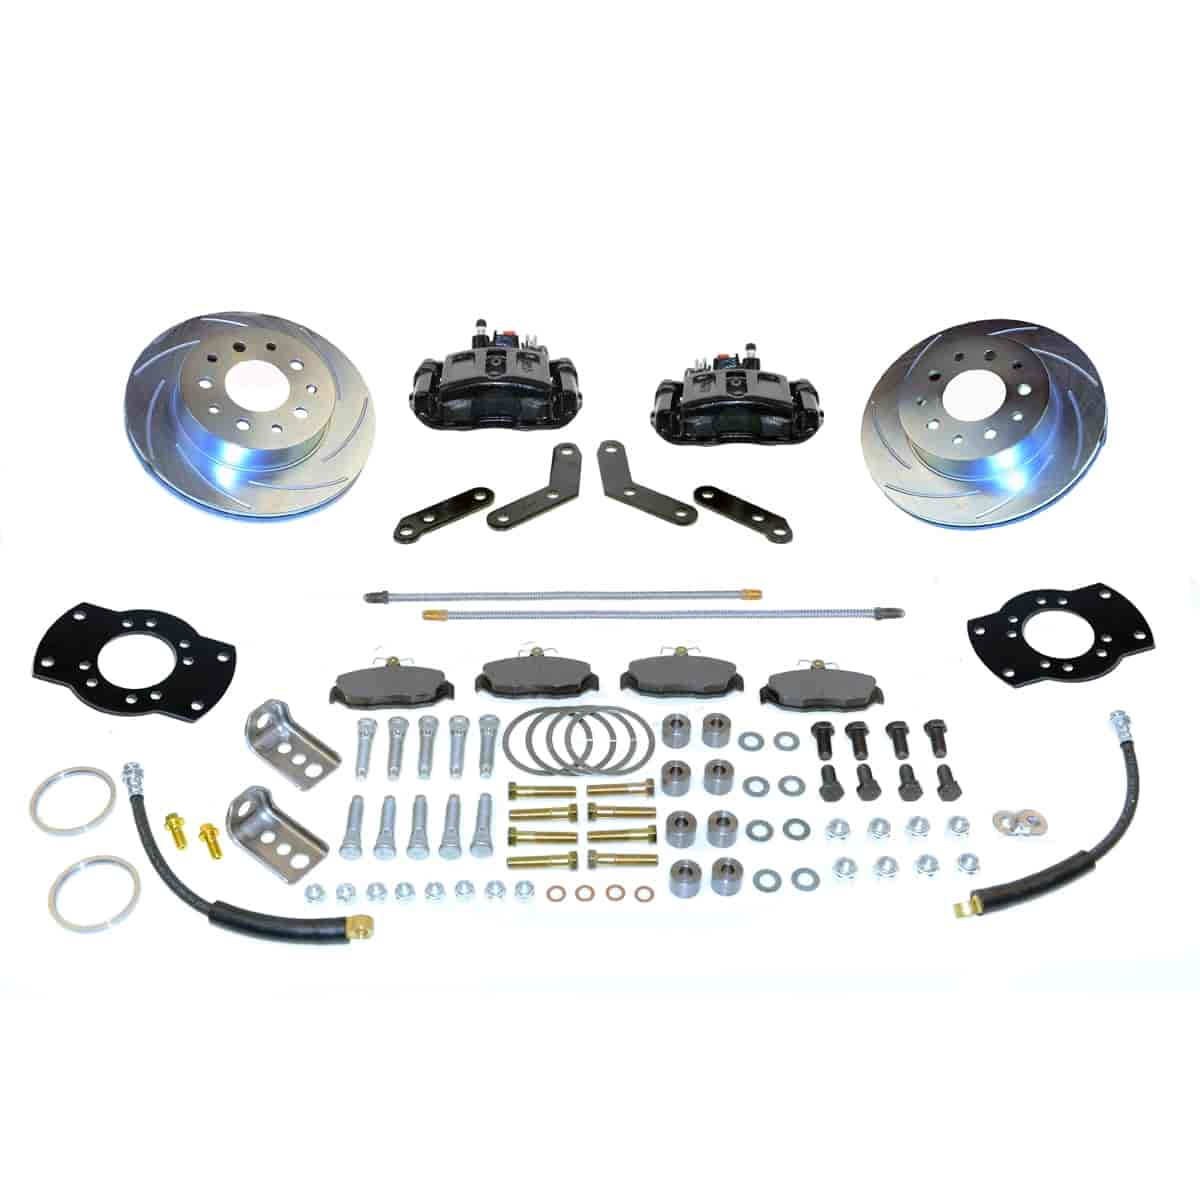 SSBC A117BK - Stainless Steel Brakes Single Piston Rear Drum to Disc Brake Conversion Kits